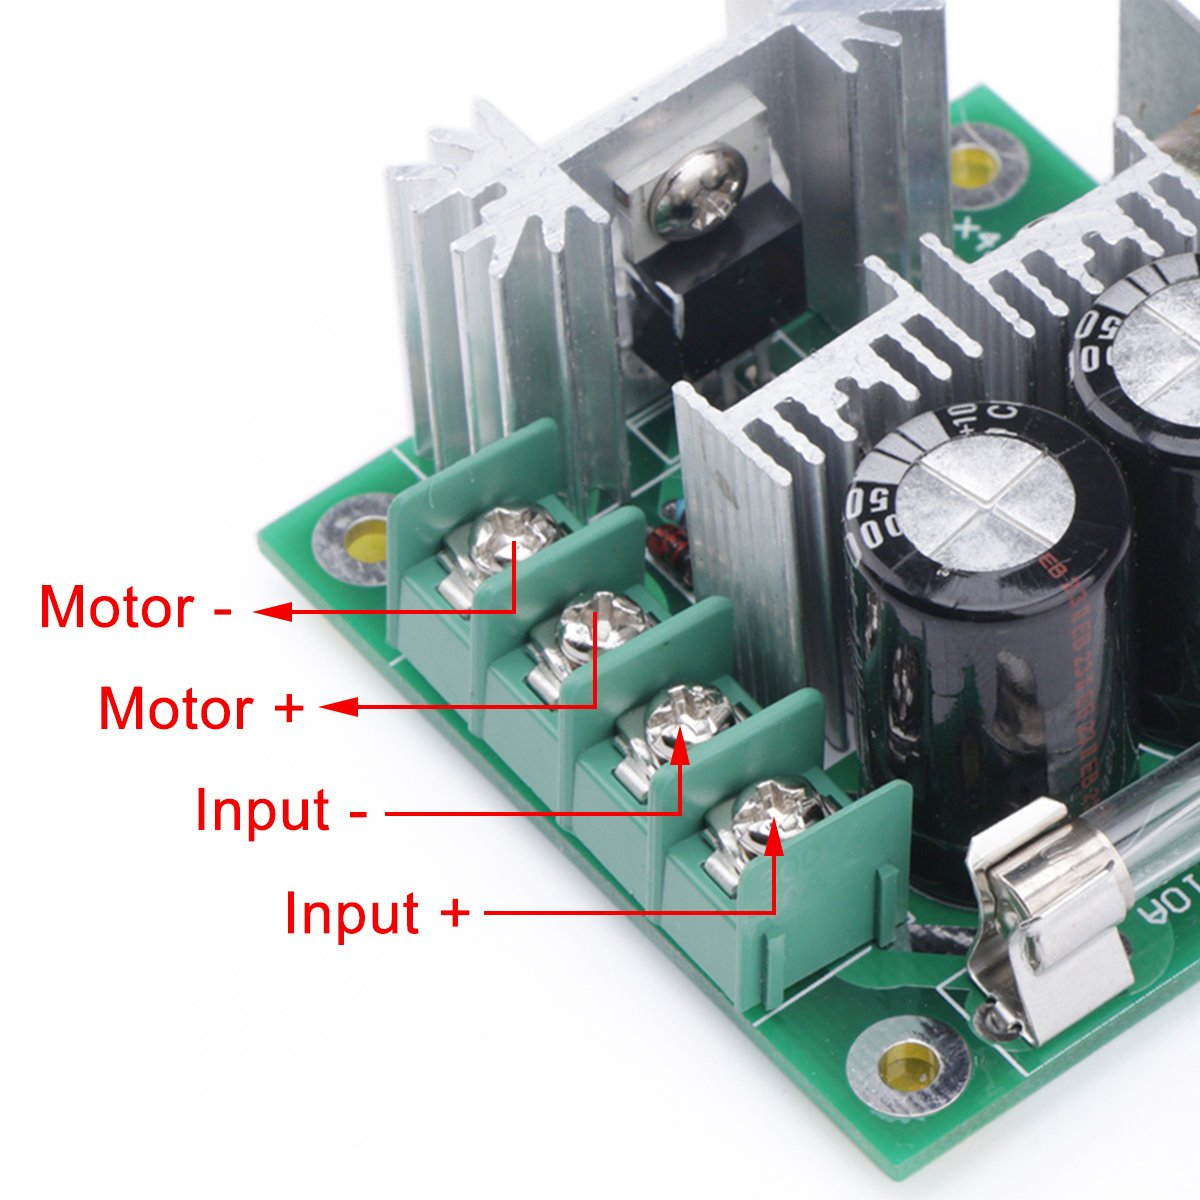 Motor Controller Drok 13khz Pwm Speed Control Board Dc 12v Circuit With Explanation Electronic 40v 24v 36v 10a Motors Electric Pump Fan Stepless Regulator Module Reverse